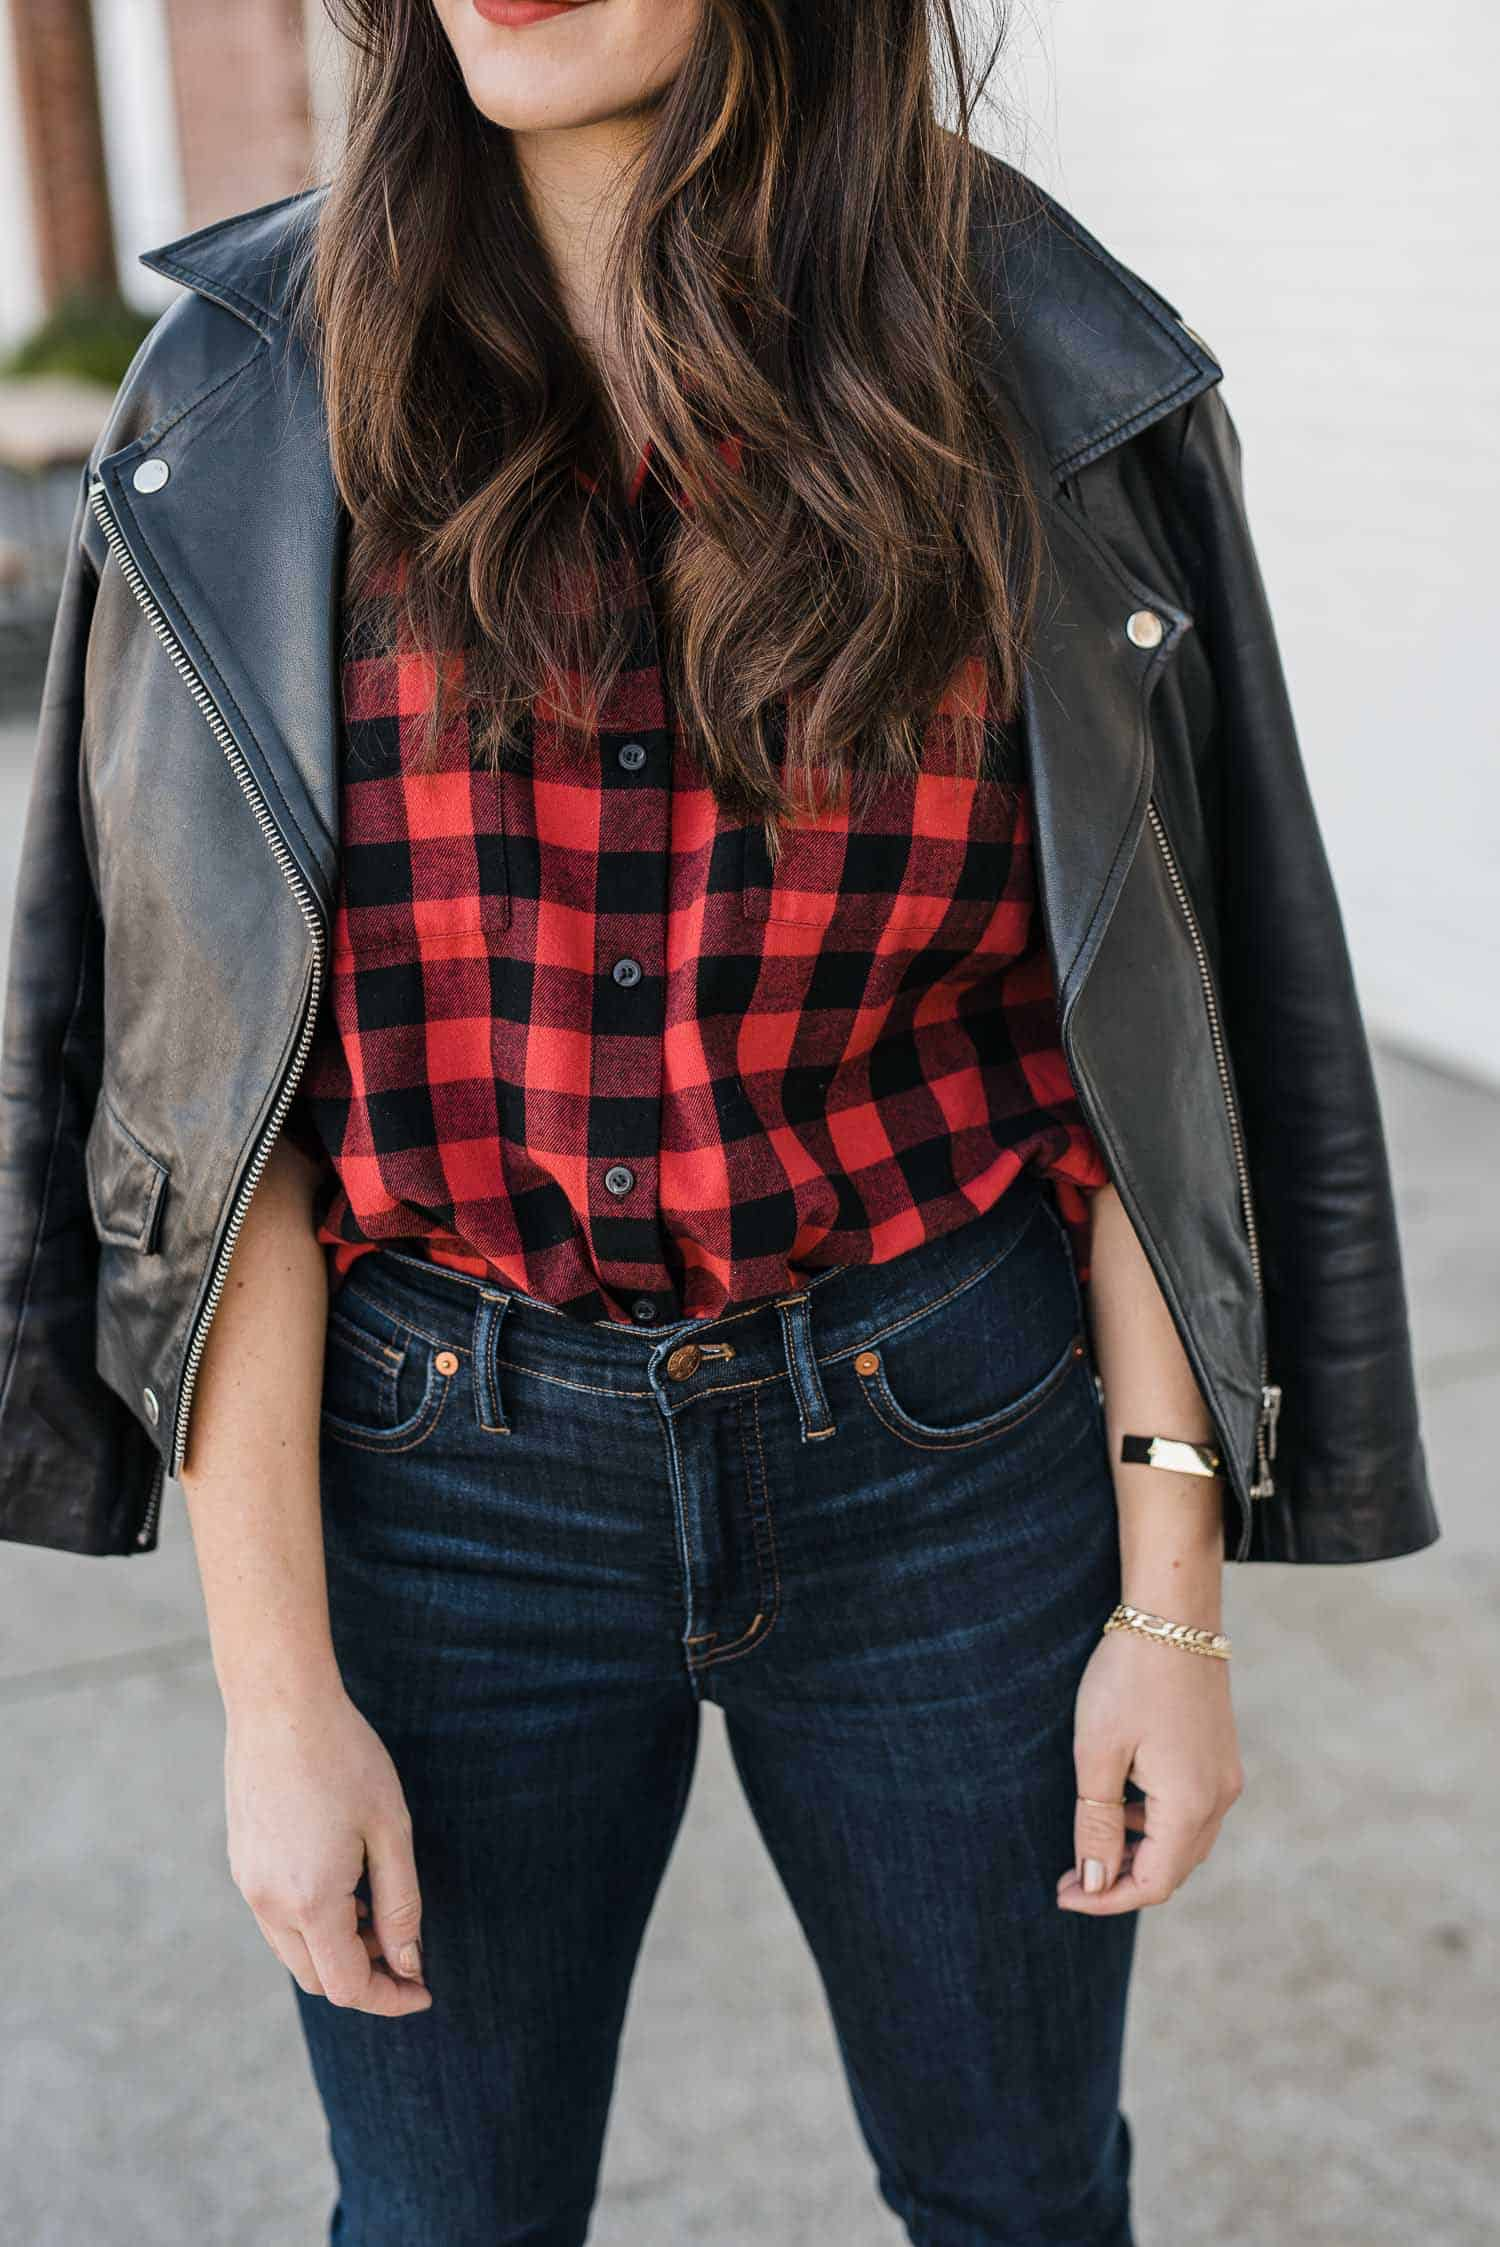 JESSICA CAMERATA OUTFIT DETAILS: MADEWELL PLAID SHIRT, LEATHER JACKET AND MADEWELL JEANS